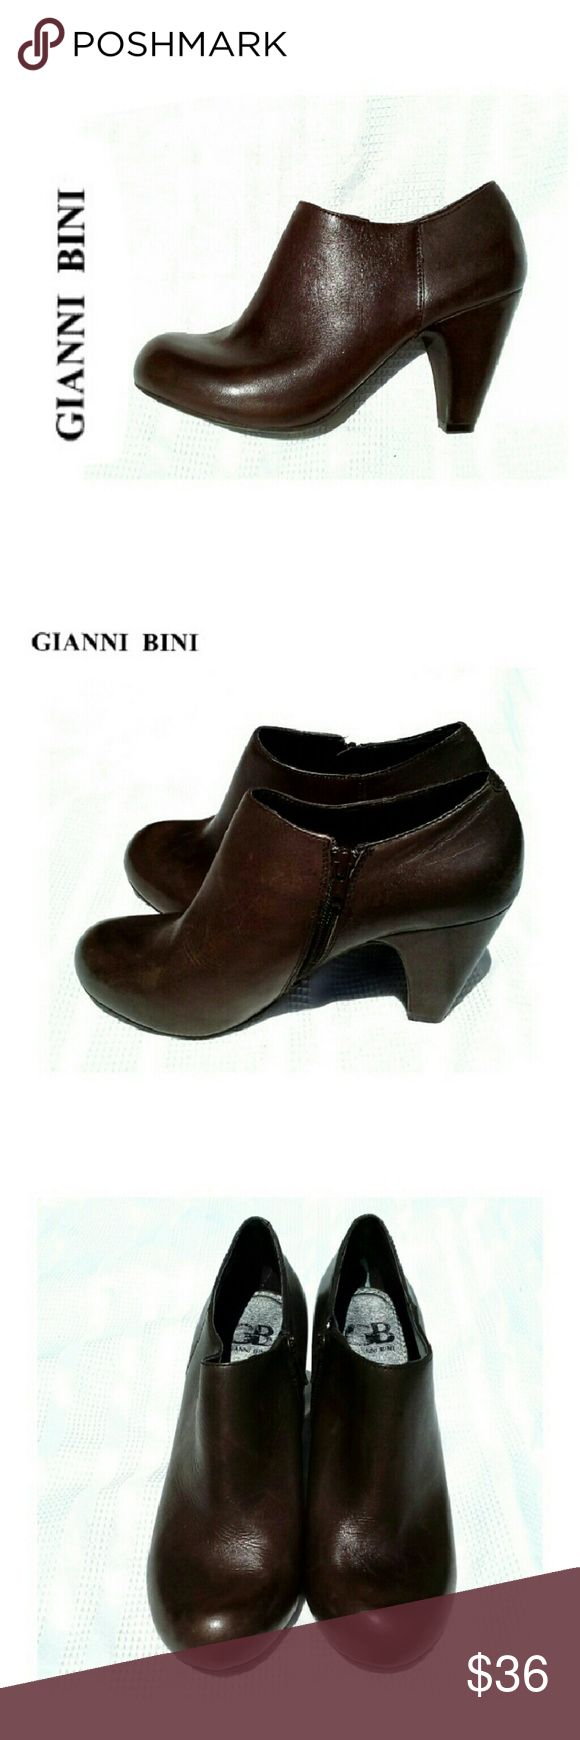 """GIANNI BINI BROWN LEATHER ANKLE BOOTS GIANNI BINI BROWN LEATHER ANKLE BOOTS Pre-Loved ?Like New *.  100% Genuine Leather *.  Zipper Closure on Inside *.  3 1/2"""" Heel *.  Clean Insides . Please See All Pics. Ask ? If Needed Gianni Bini Shoes Ankle Boots & Booties"""